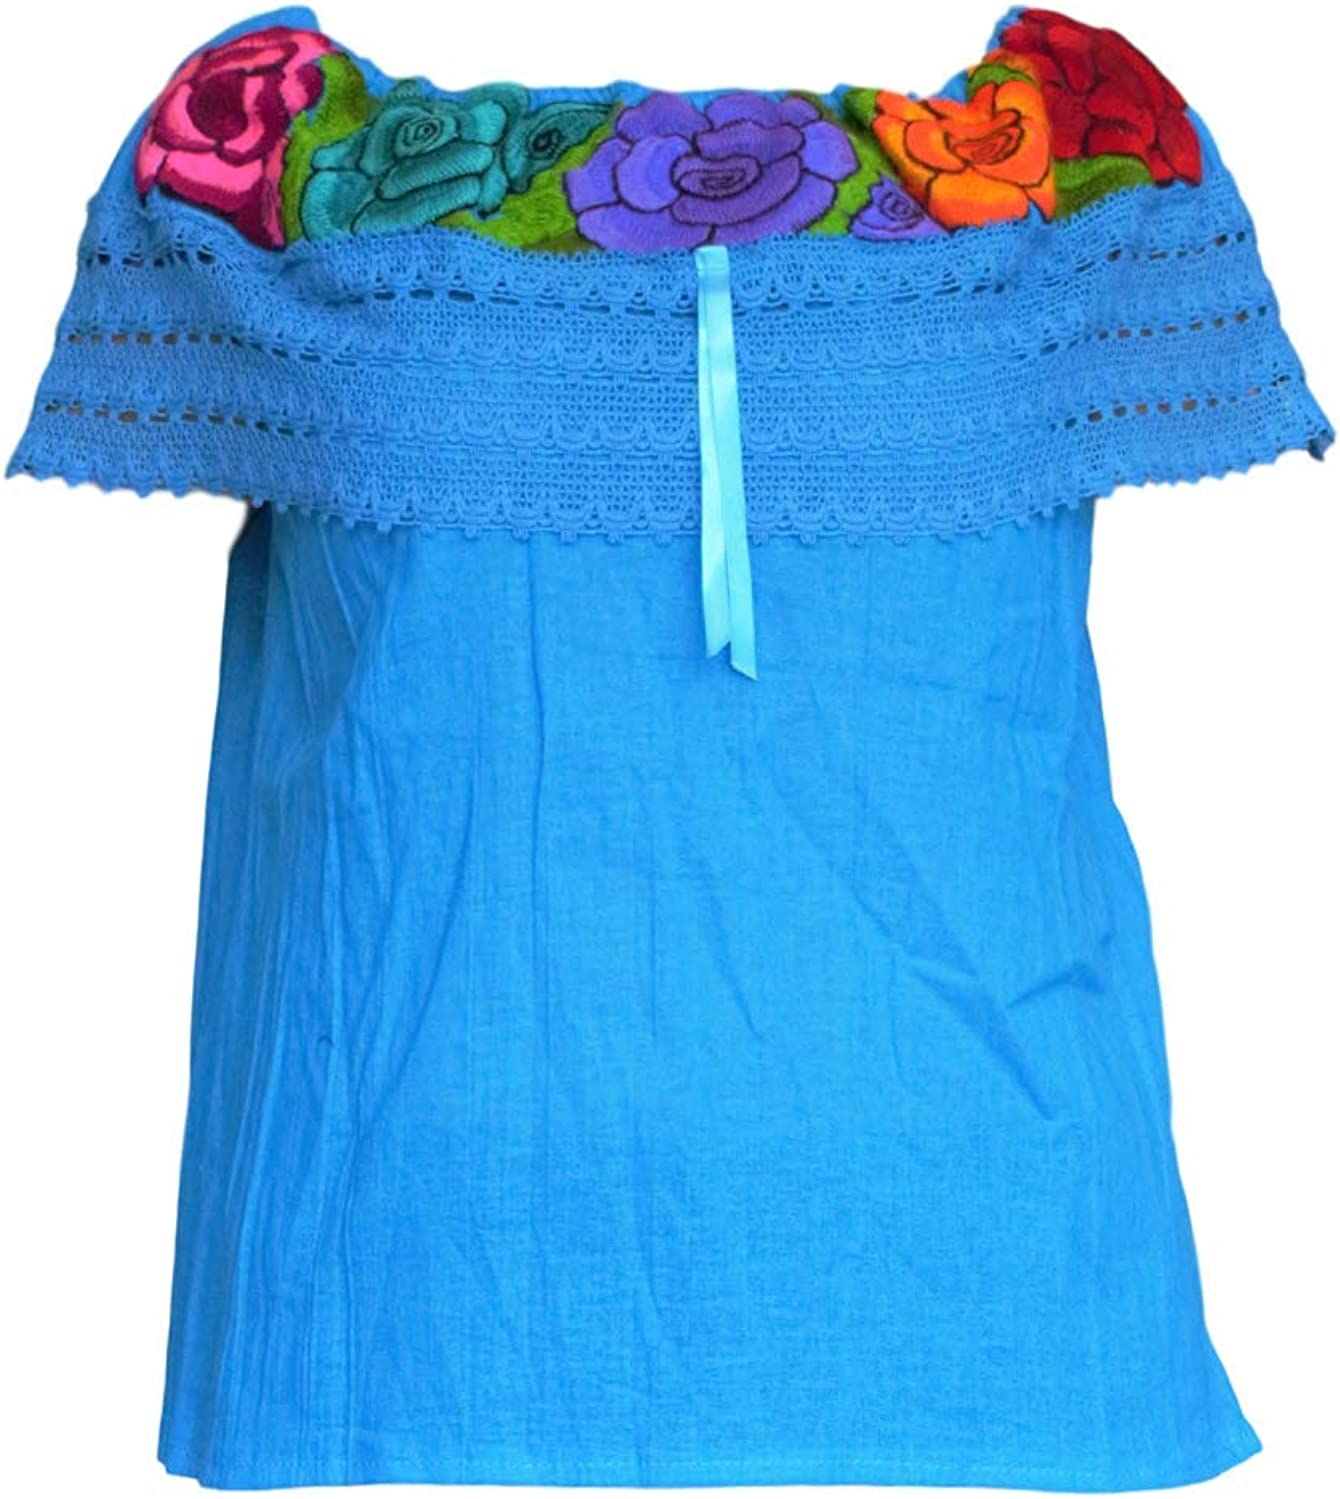 Mexican Shirts for Women Mexican Fiesta Custome Made in Chiapas Choose Size&Color